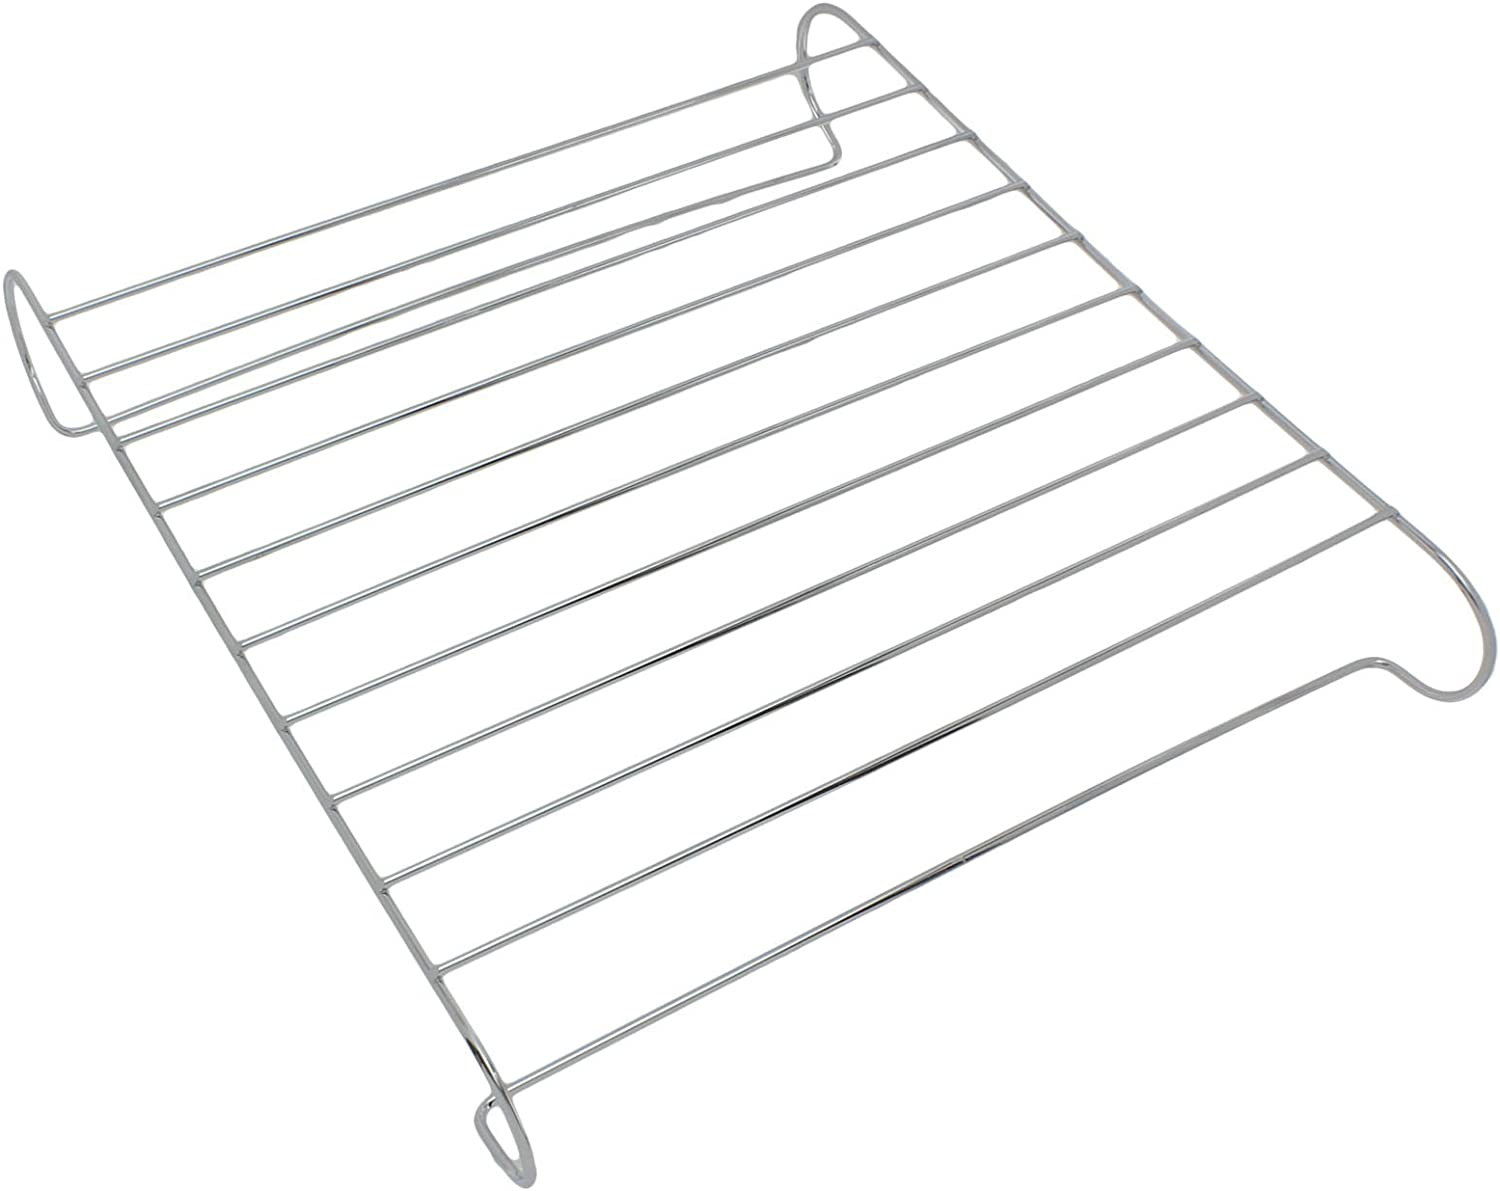 400mm x 340mm SPARES2GO Chrome Base Shelf//Cooling Rack for Amica Oven Cooker